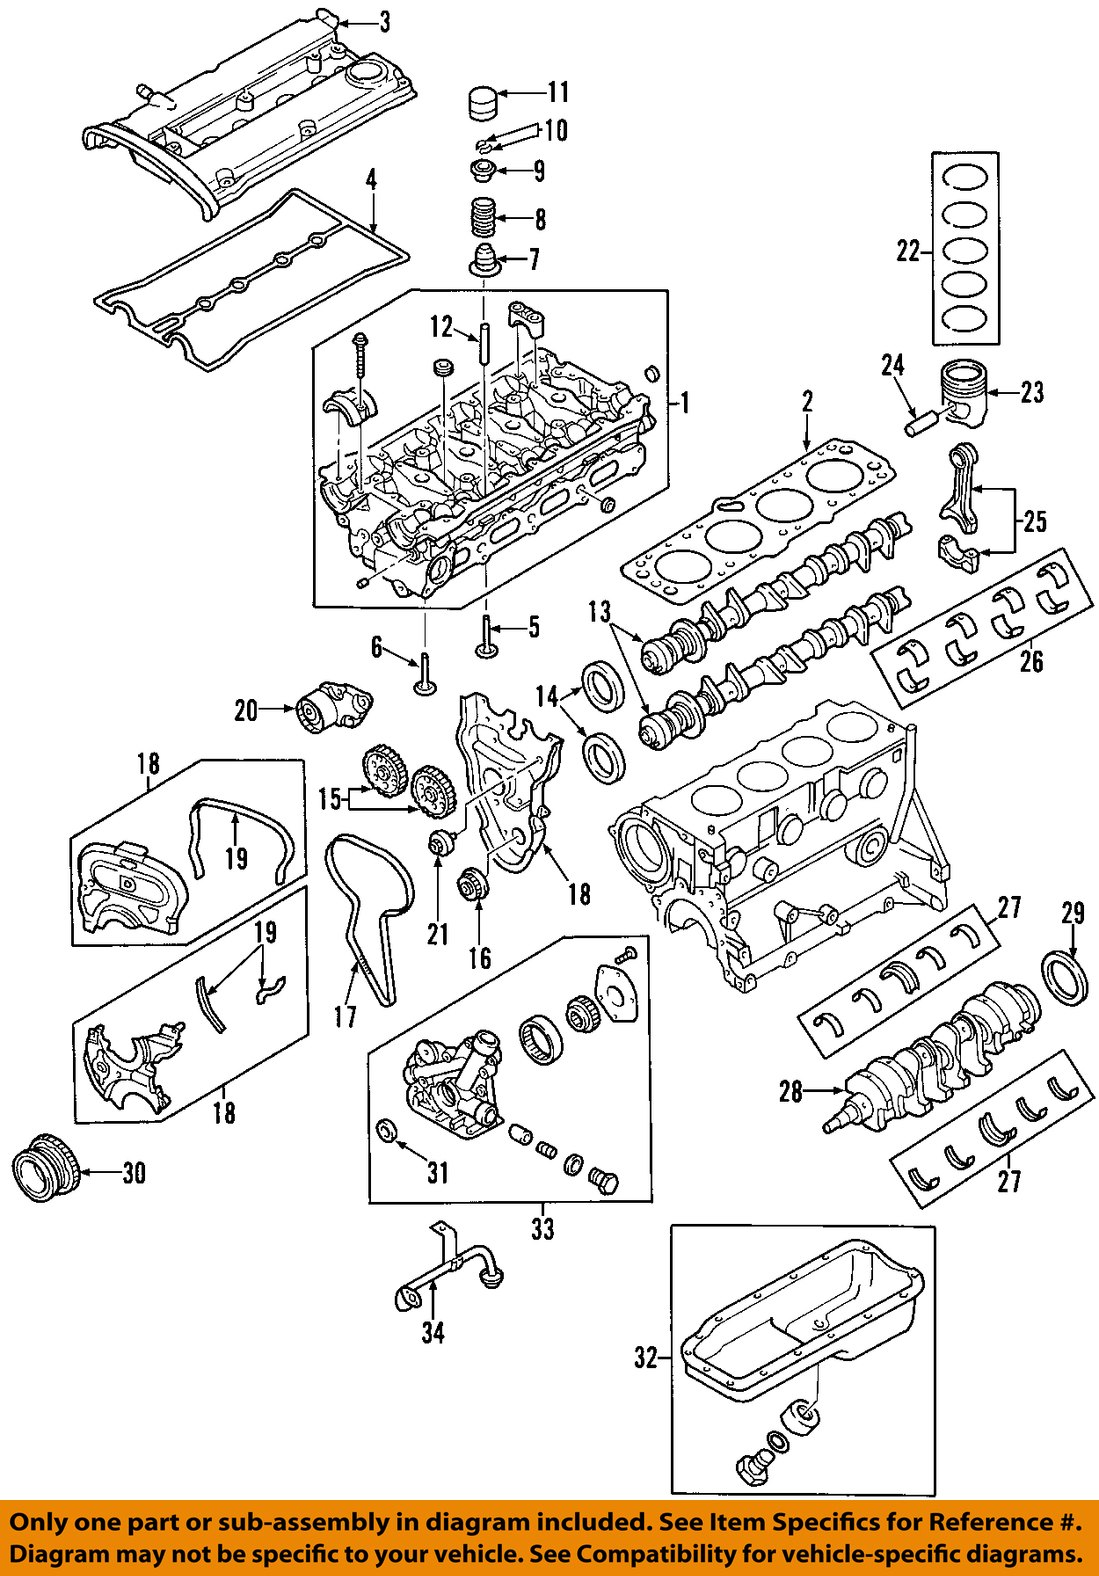 2007 chevy aveo belt diagram honda 6 5 hp engine parts 2008 wiring library